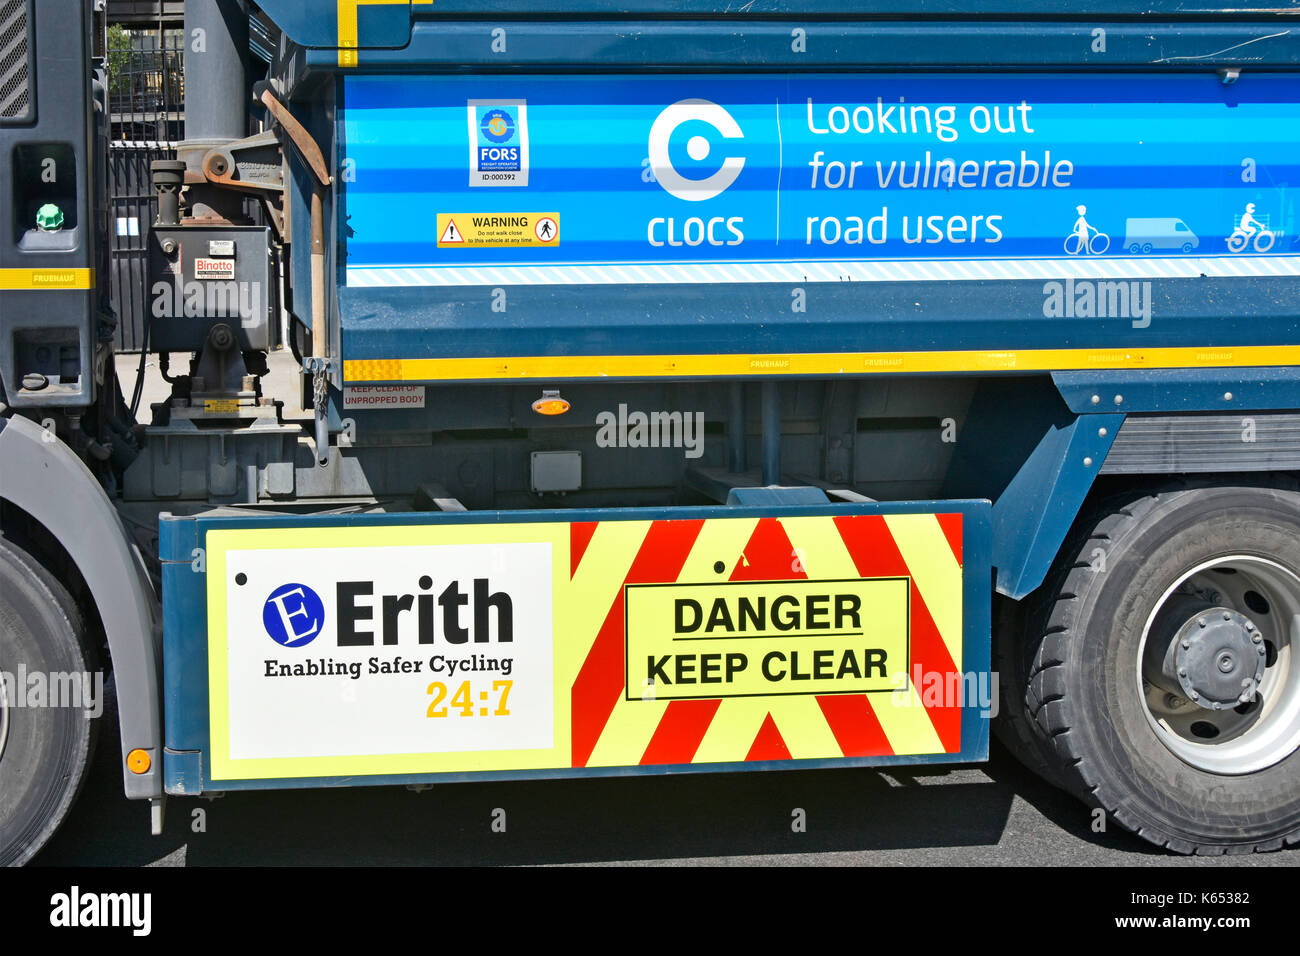 Tipper lorry truck company Erith promoting looking out for vulnerable road users after high profile accidents in London UK many involving cyclists - Stock Image